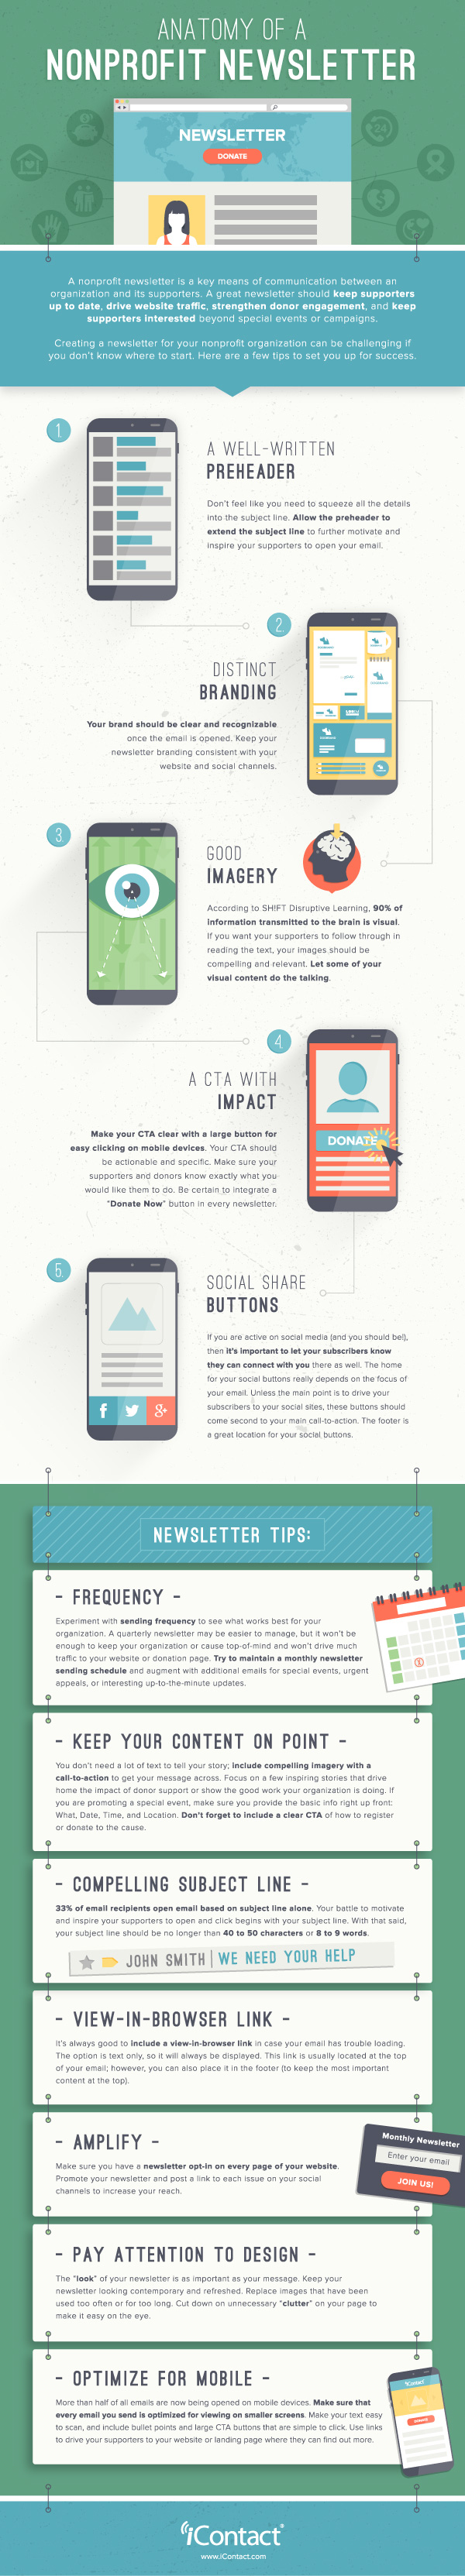 5 Steps on Building Traffic to Your Nonprofit Blog [Infographic]